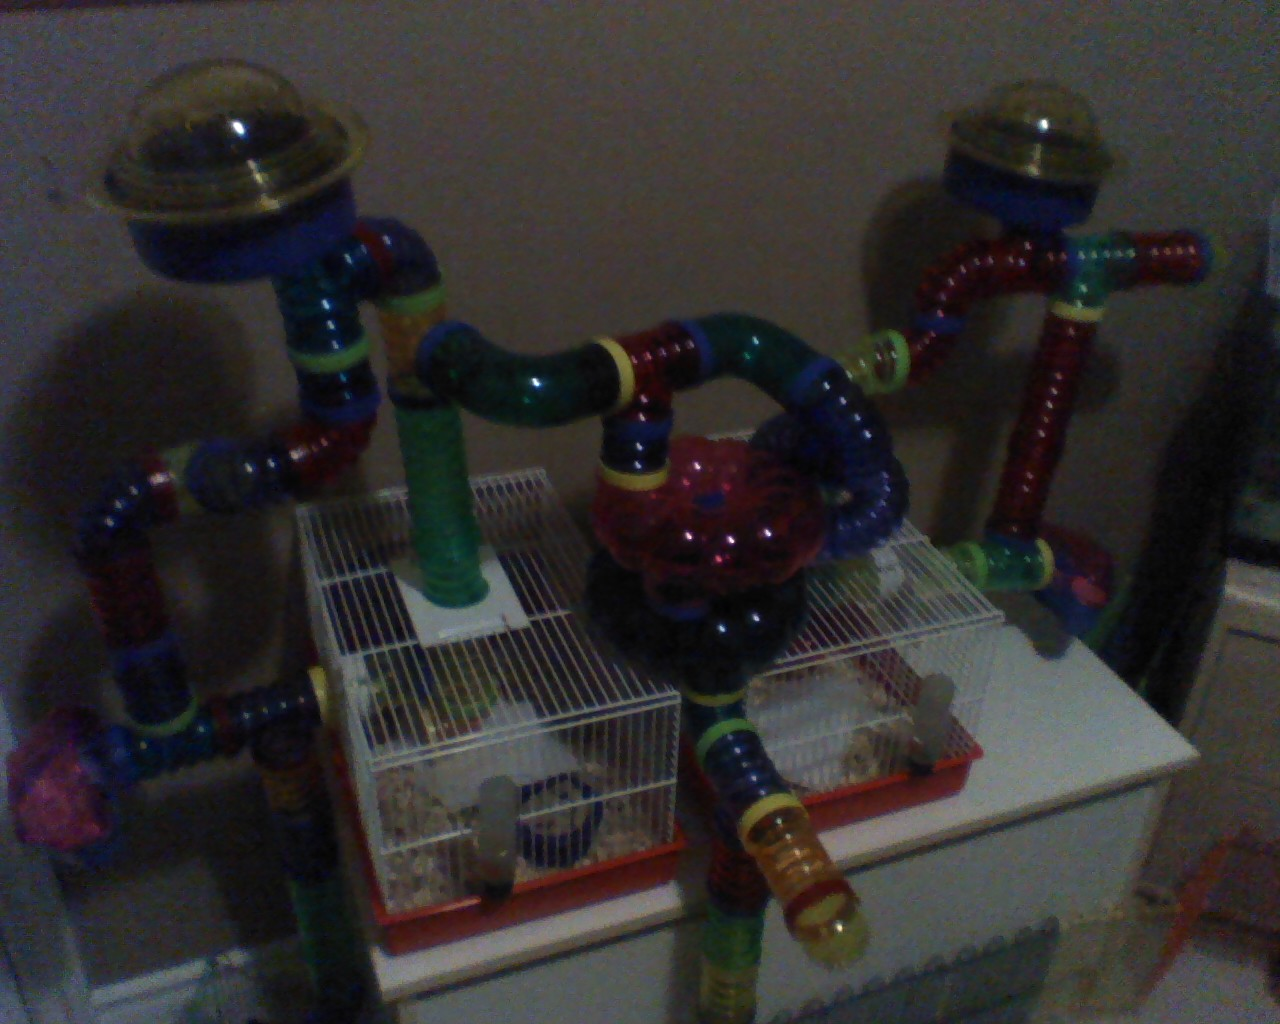 Remmy's Newest Cage Set-Up